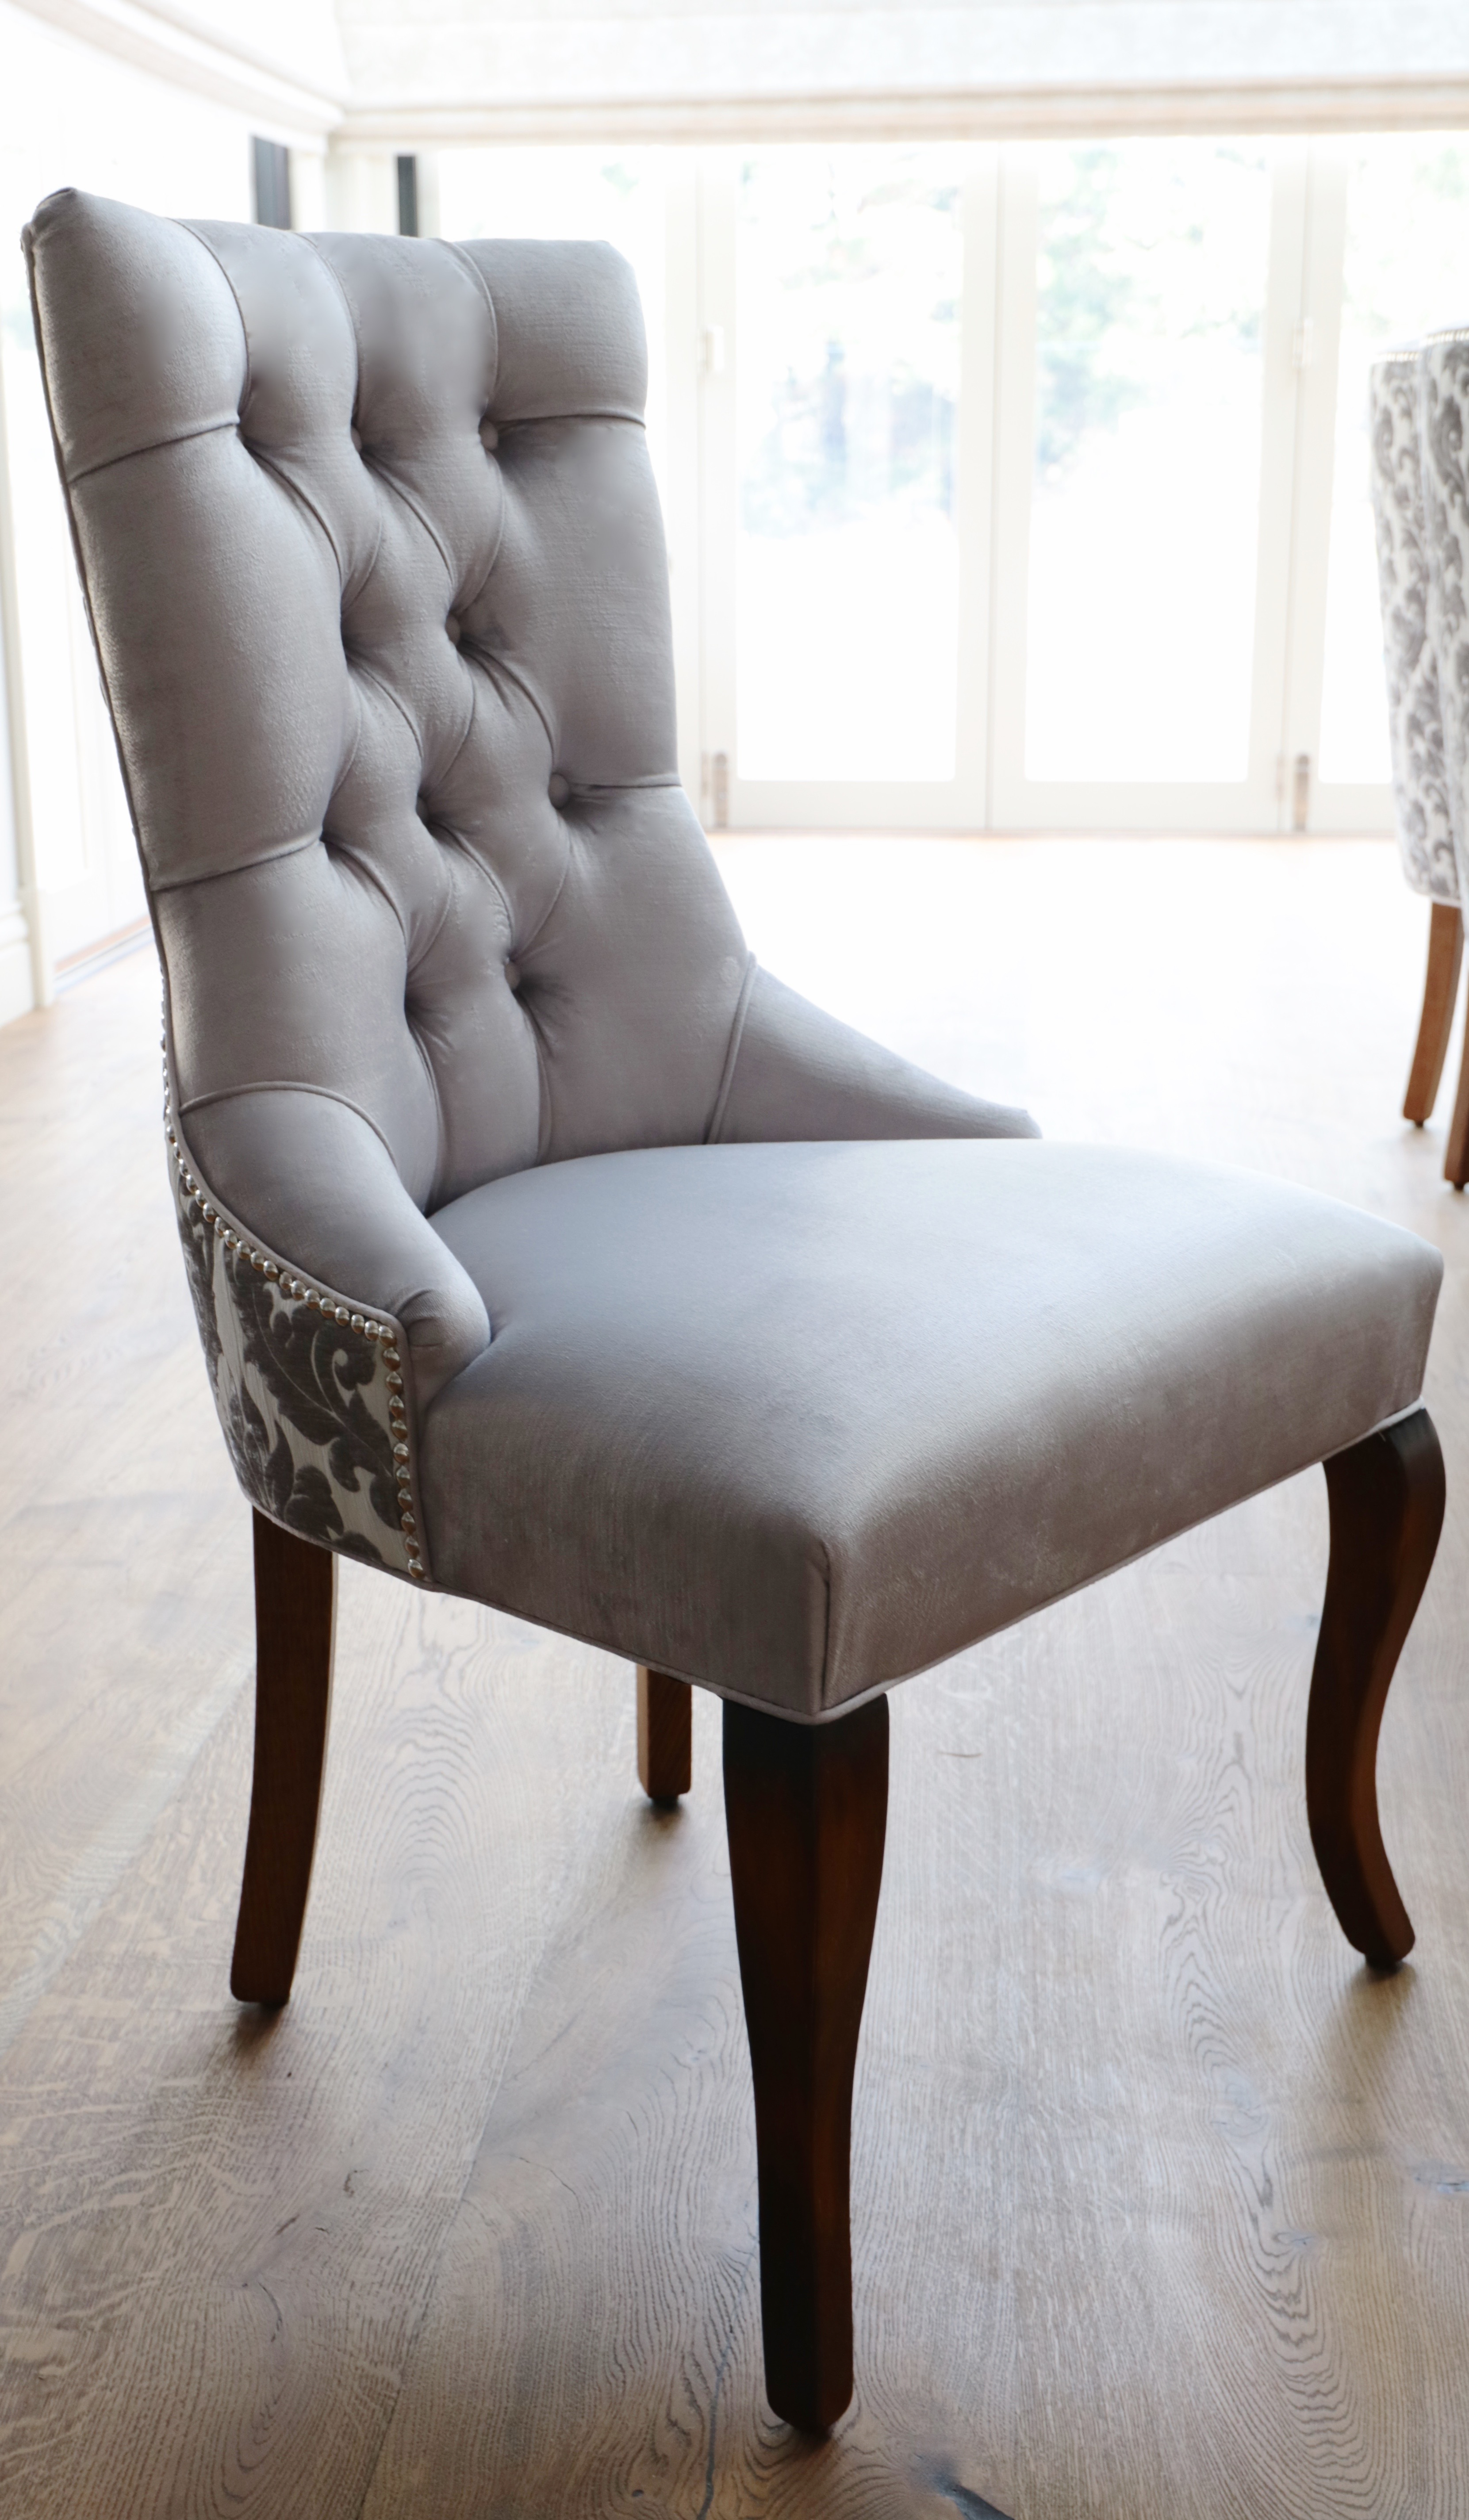 dining chair arm chair lounge chair chesterfield tufted diamond buttoning custom made upholstery chair australia melbourne ... & dining chair arm chair lounge chair chesterfield tufted diamond ...